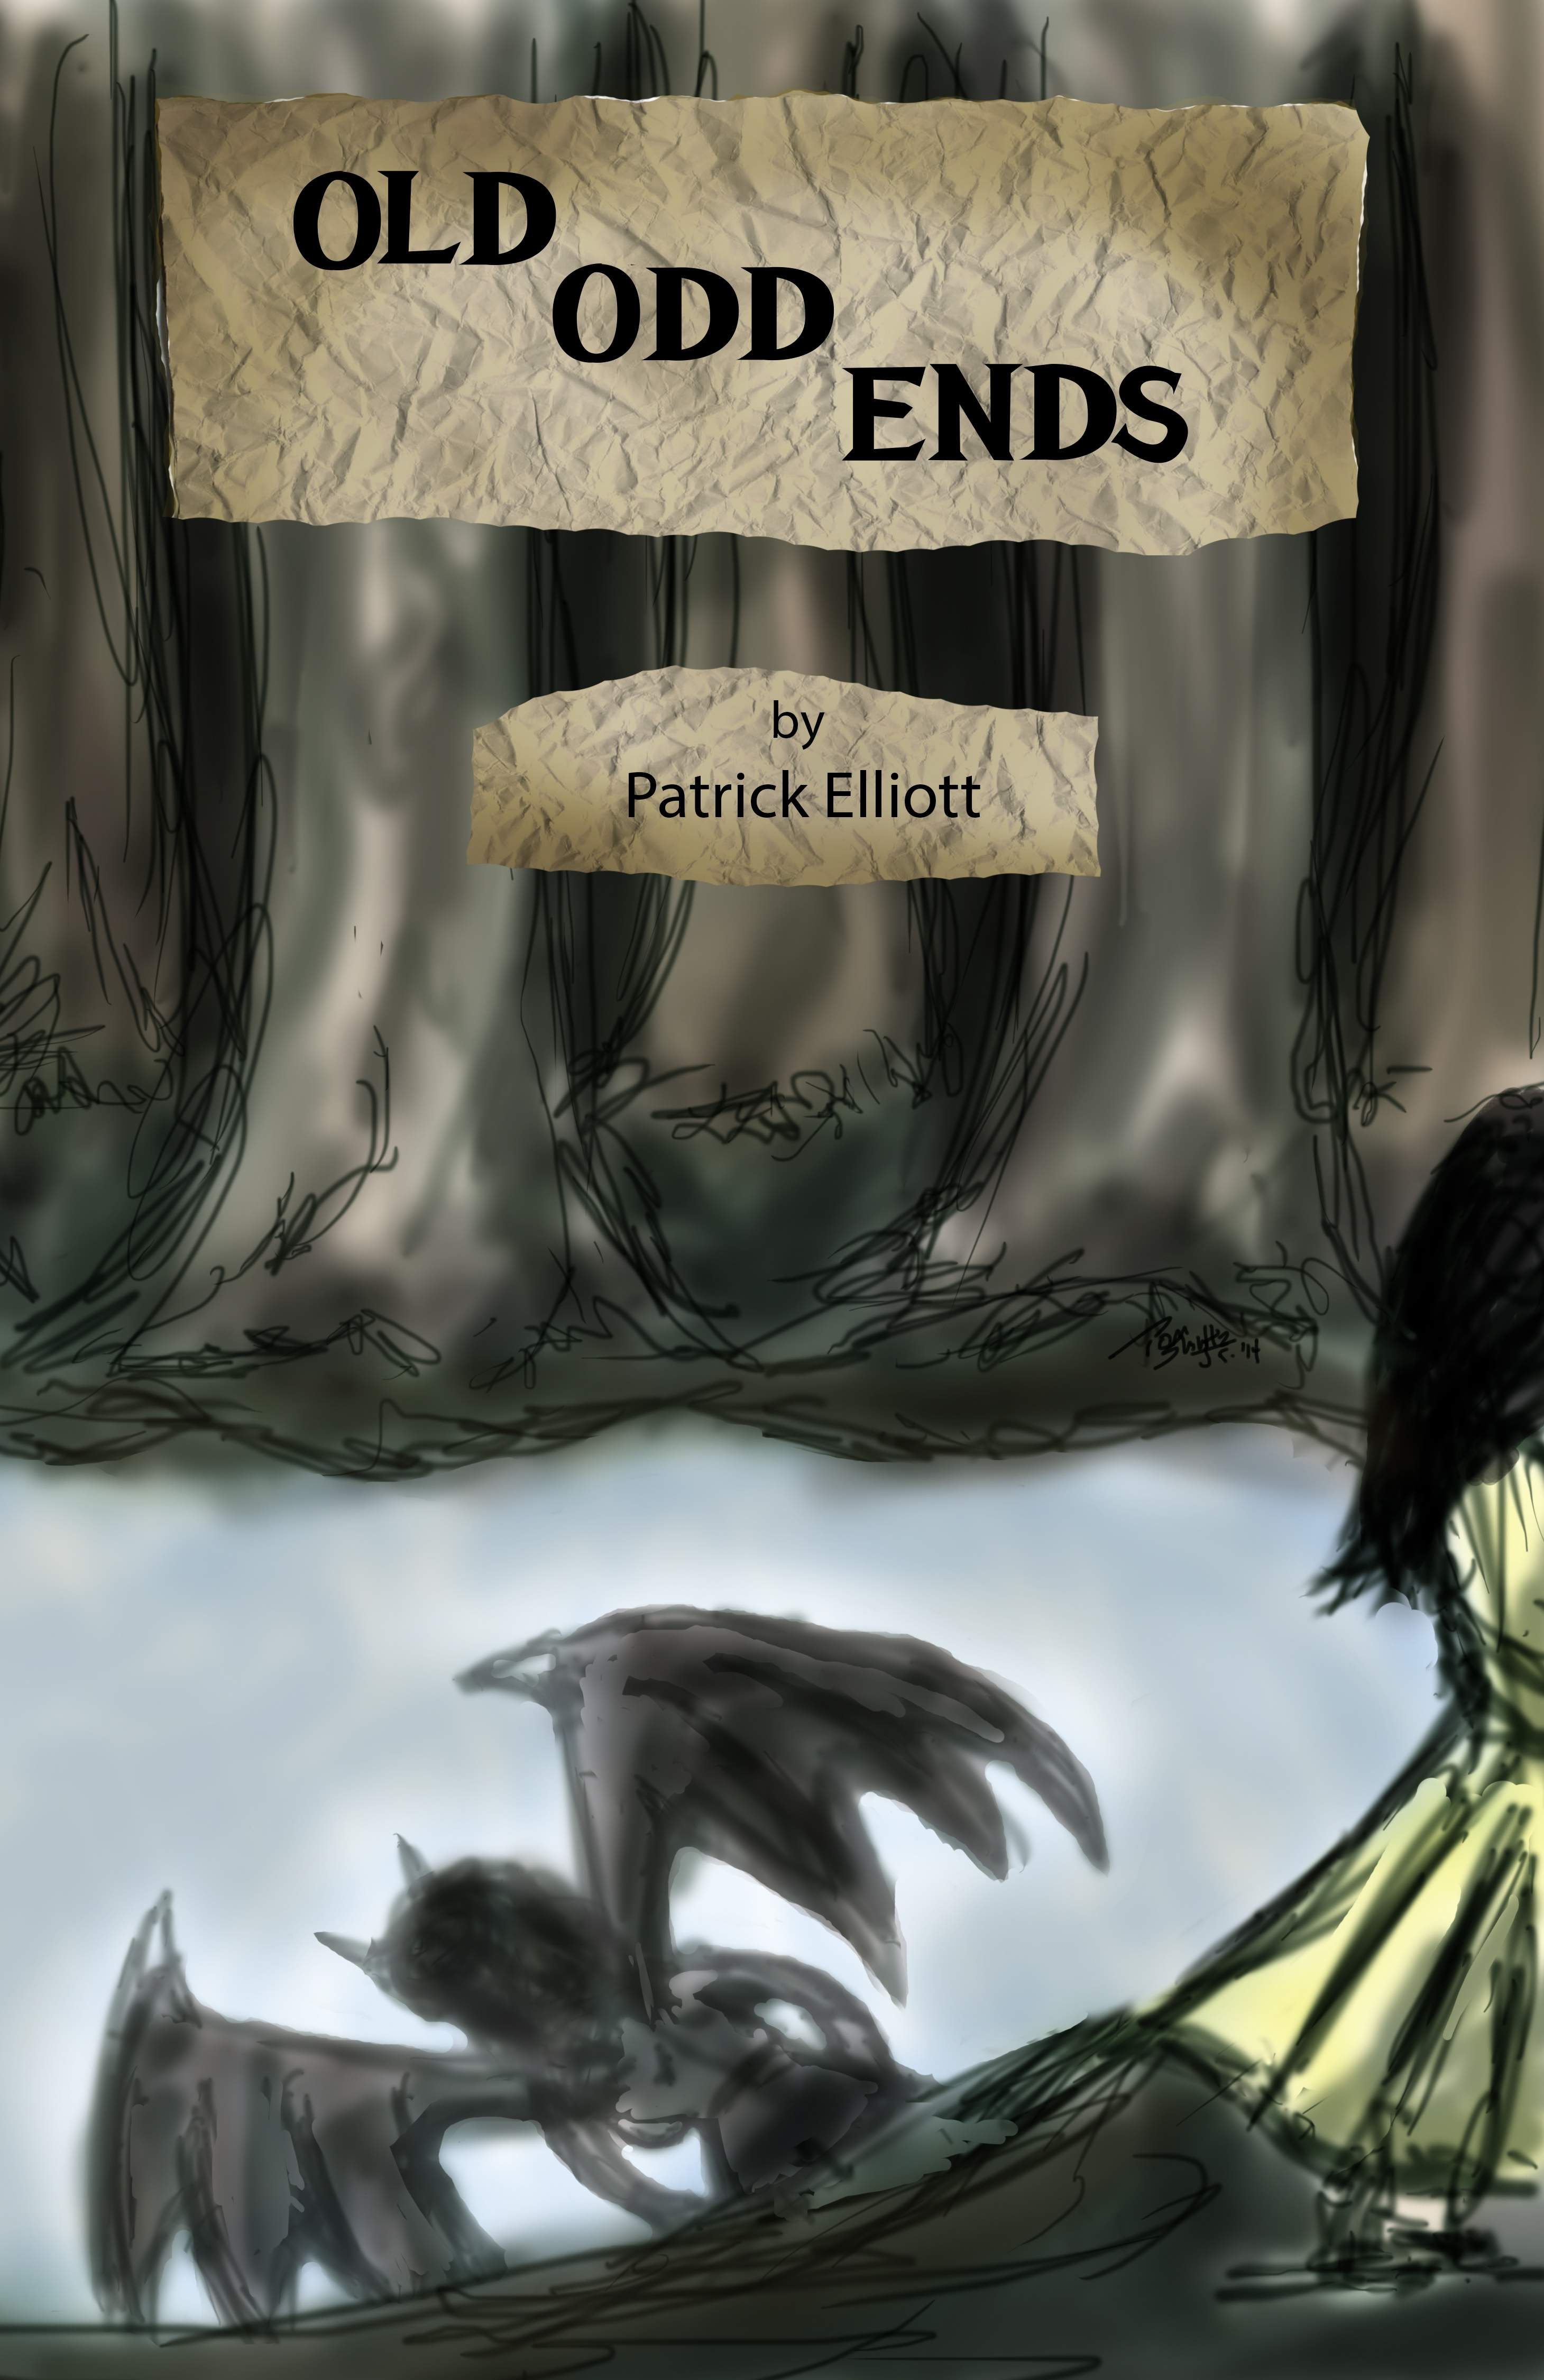 Old Odd Ends book cover